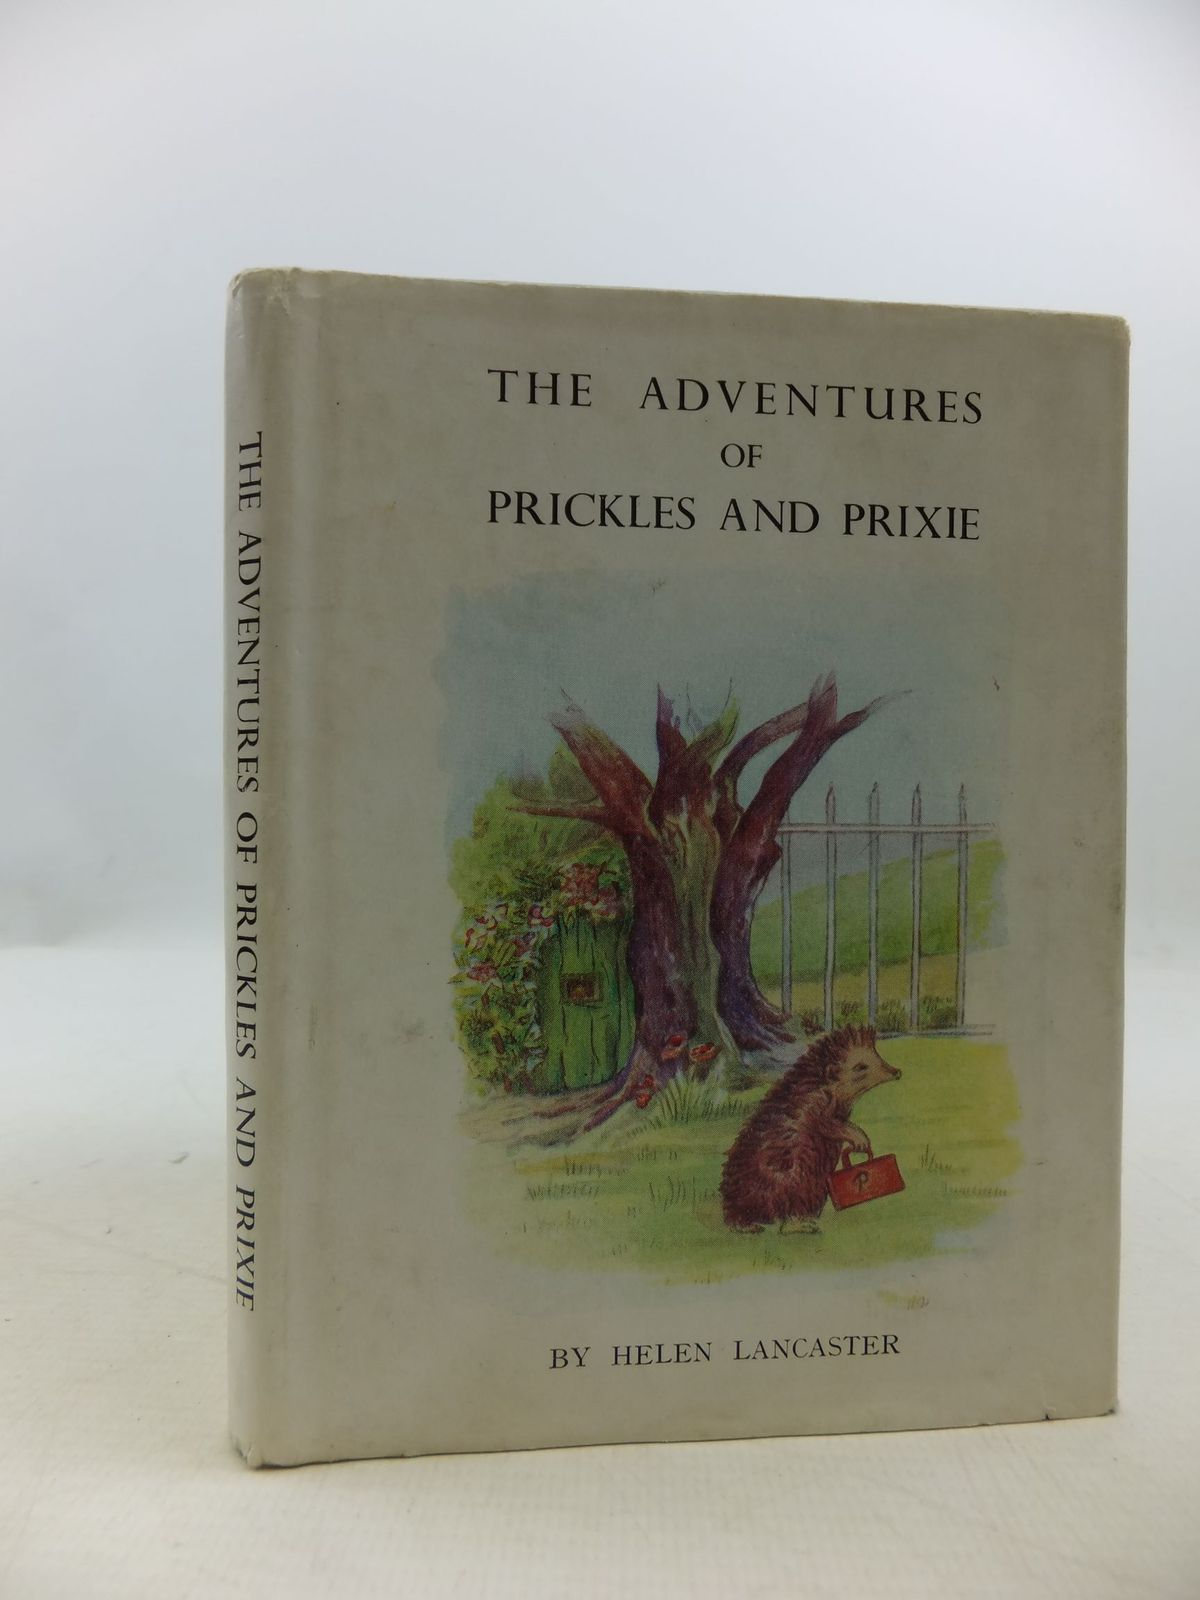 Photo of THE ADVENTURES OF PRICKLES AND PRIXIE written by Lancaster, Helen illustrated by Lancaster, Helen published by Wilding & Son Ltd. (STOCK CODE: 1708322)  for sale by Stella & Rose's Books